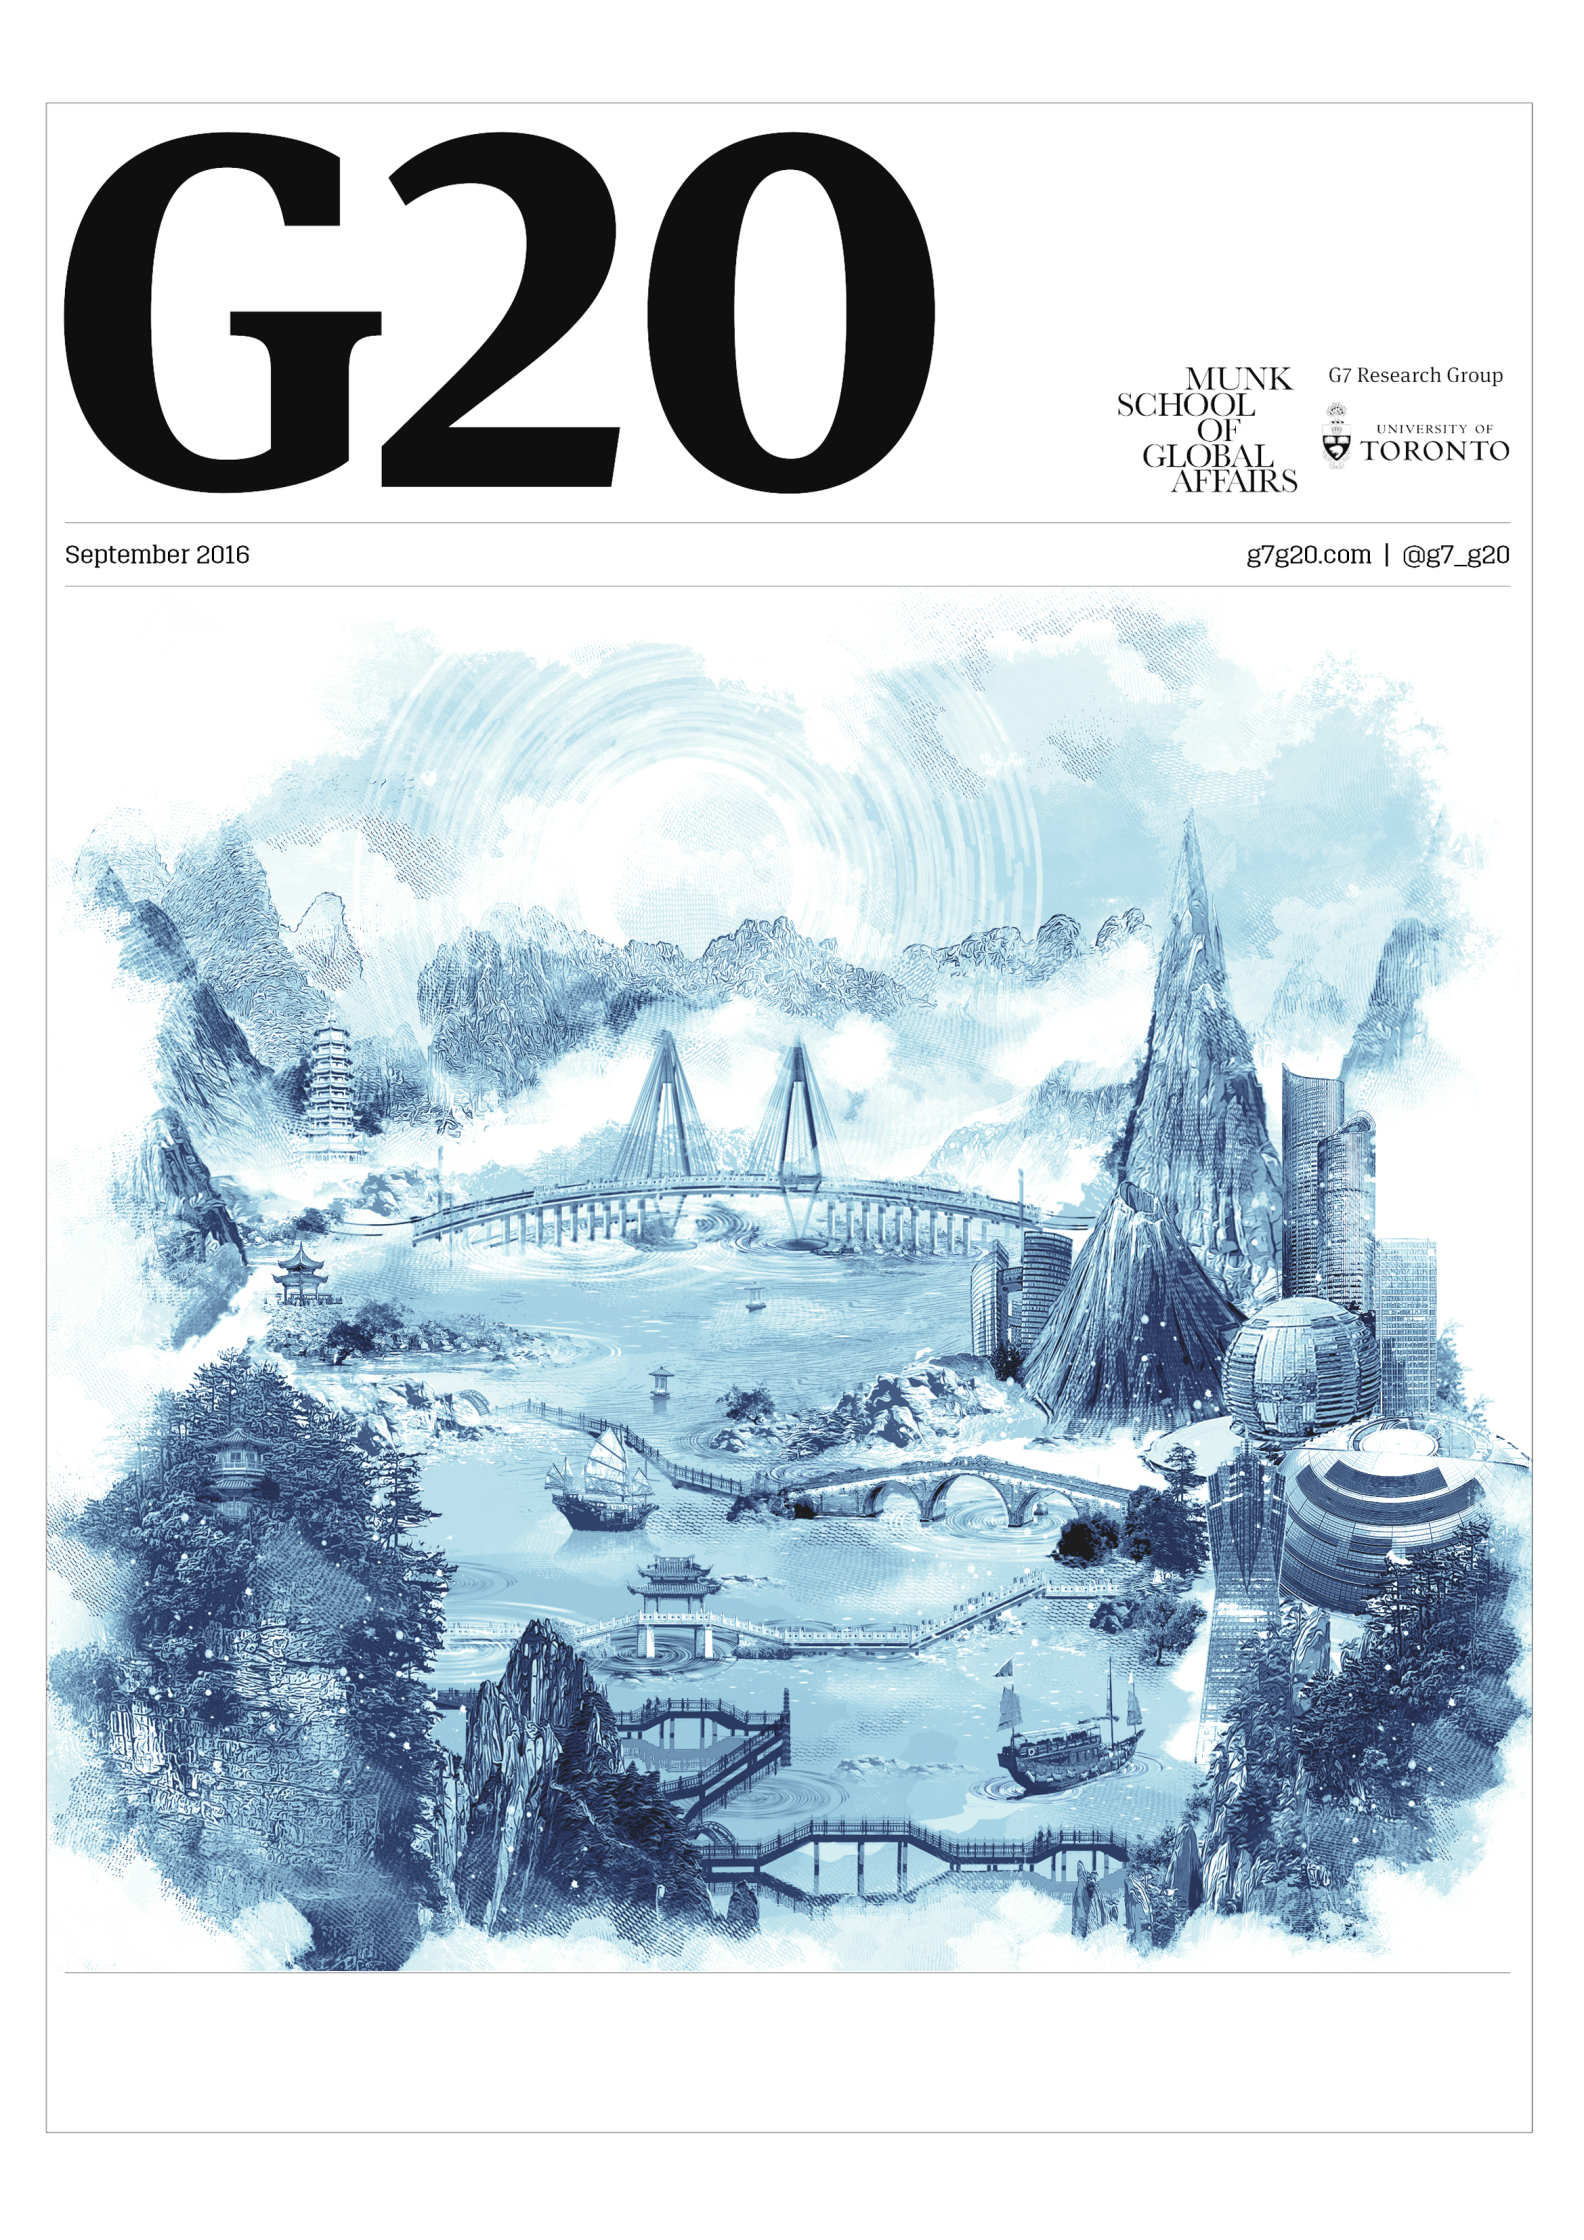 G20 Summit Brochure Cover.jpg